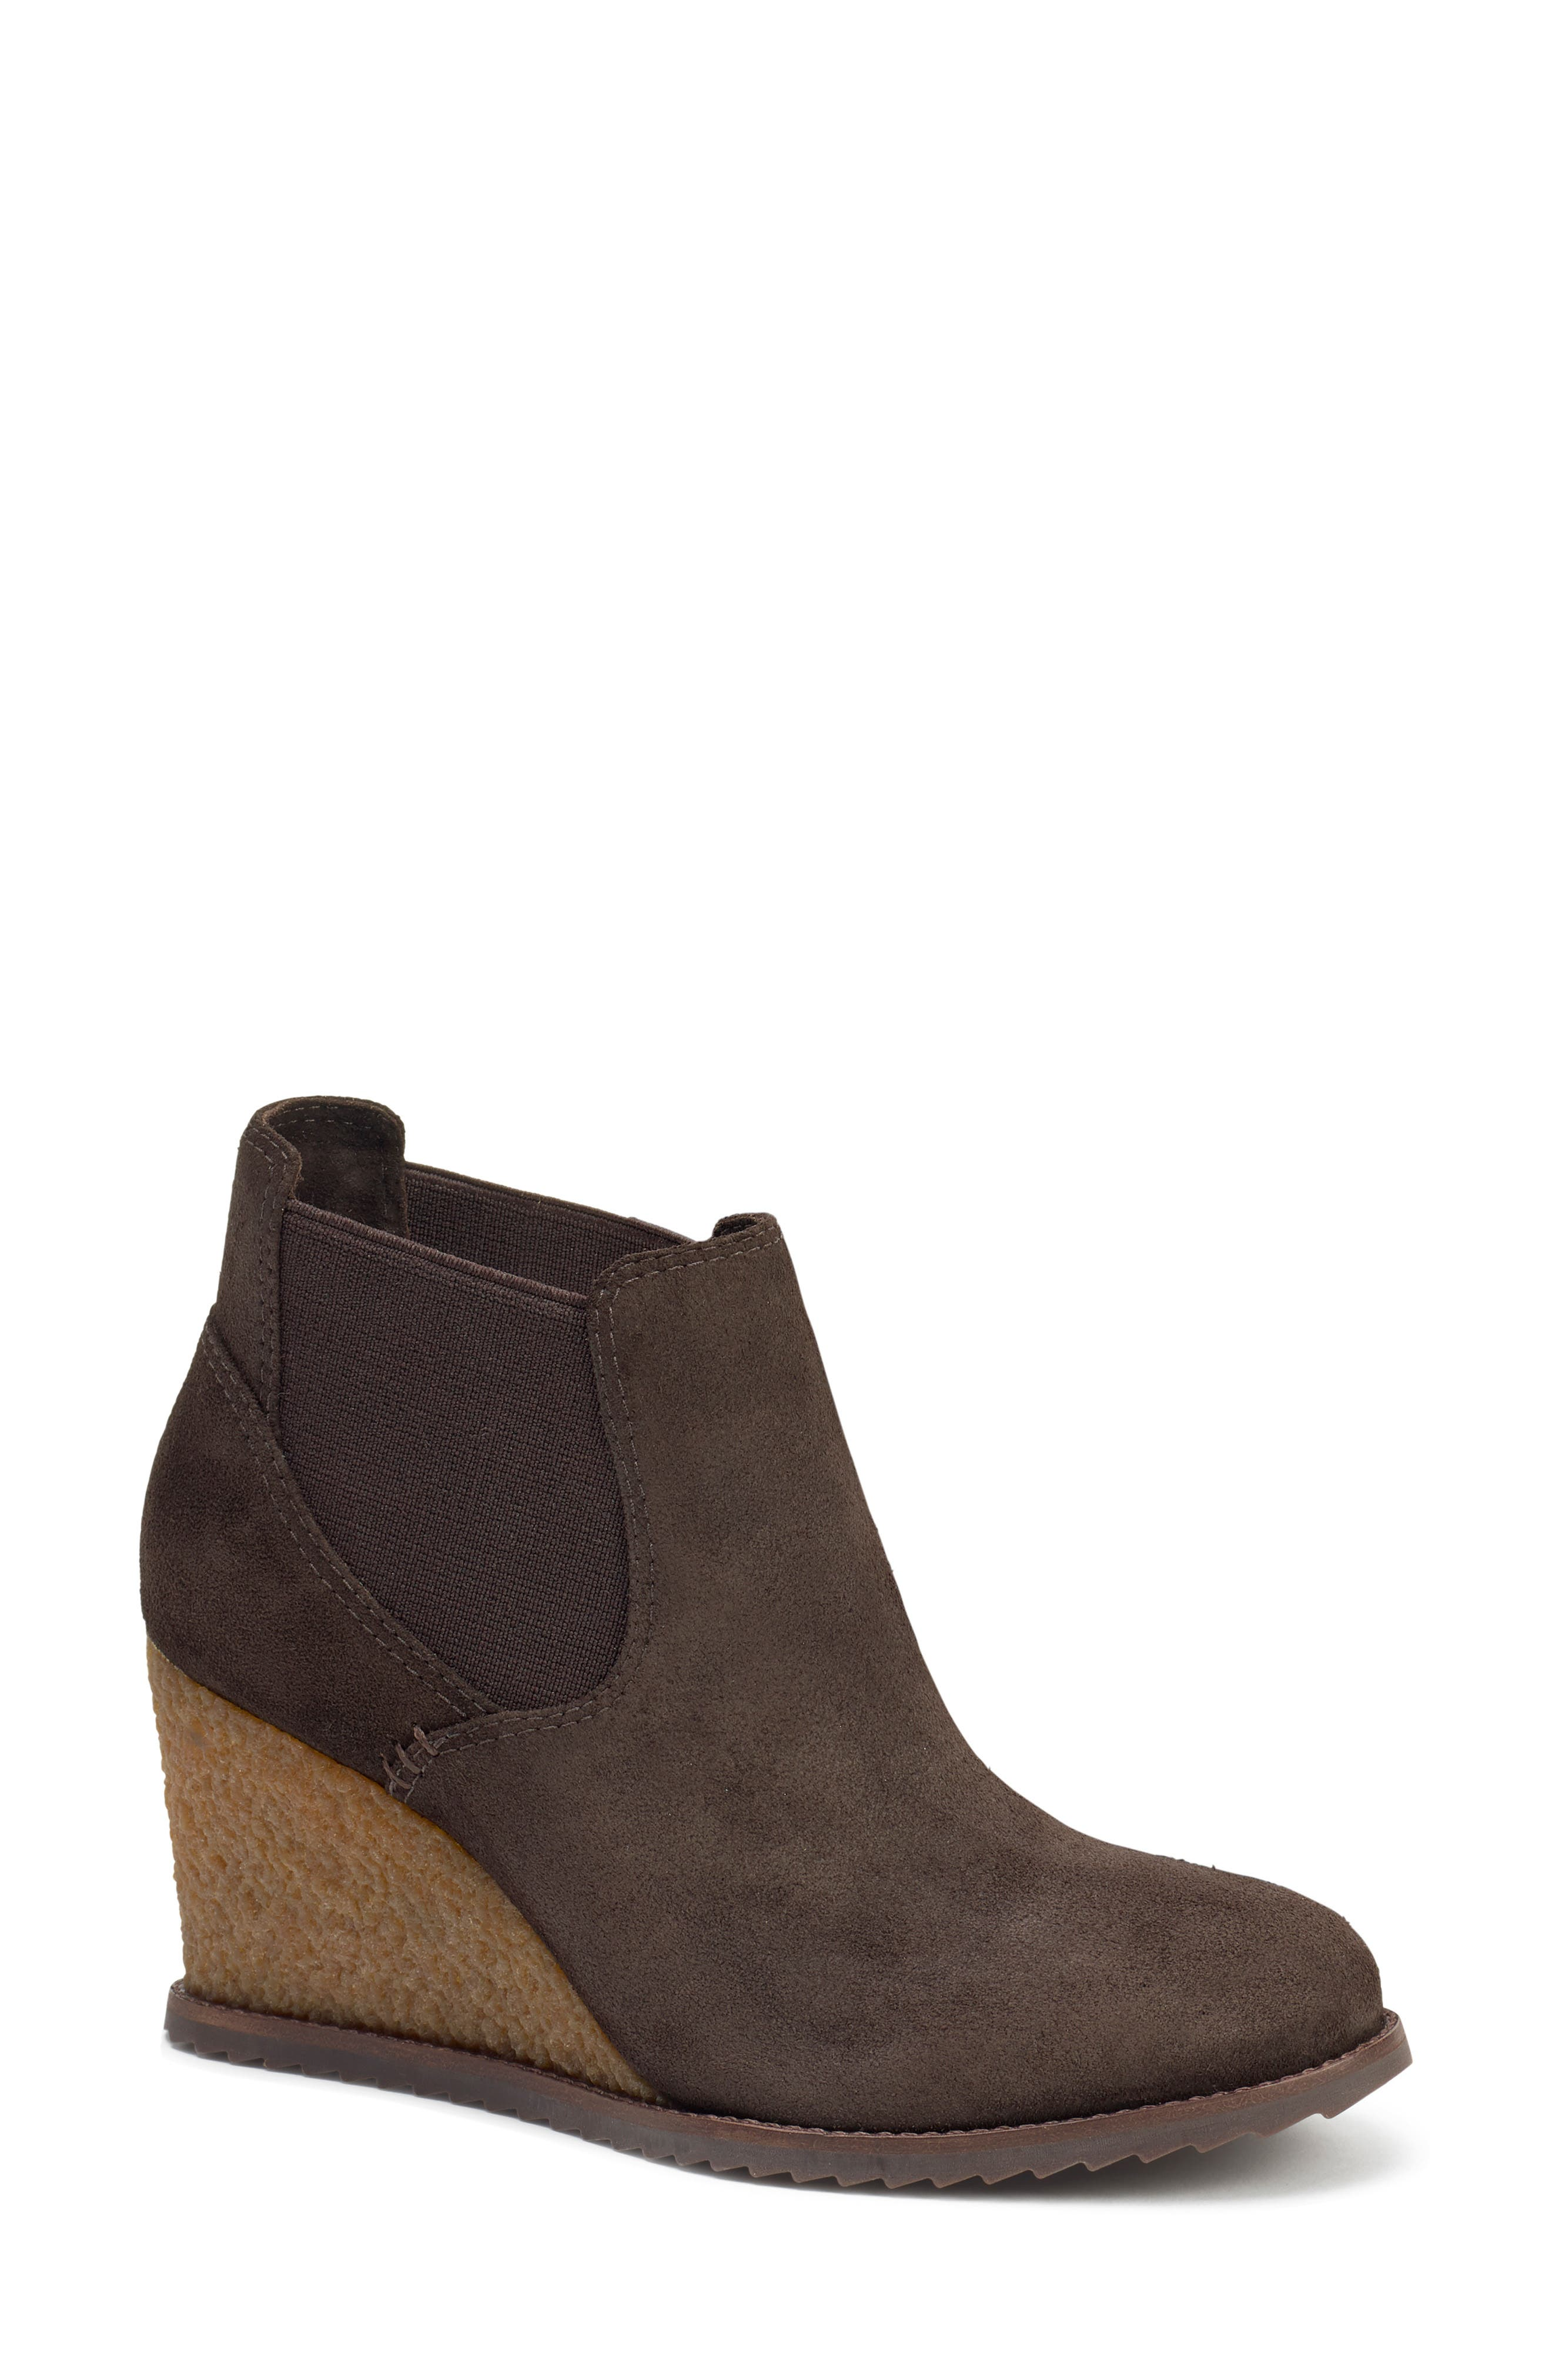 TRASK,                             Tatum Wedge Bootie,                             Main thumbnail 1, color,                             BROWN SUEDE